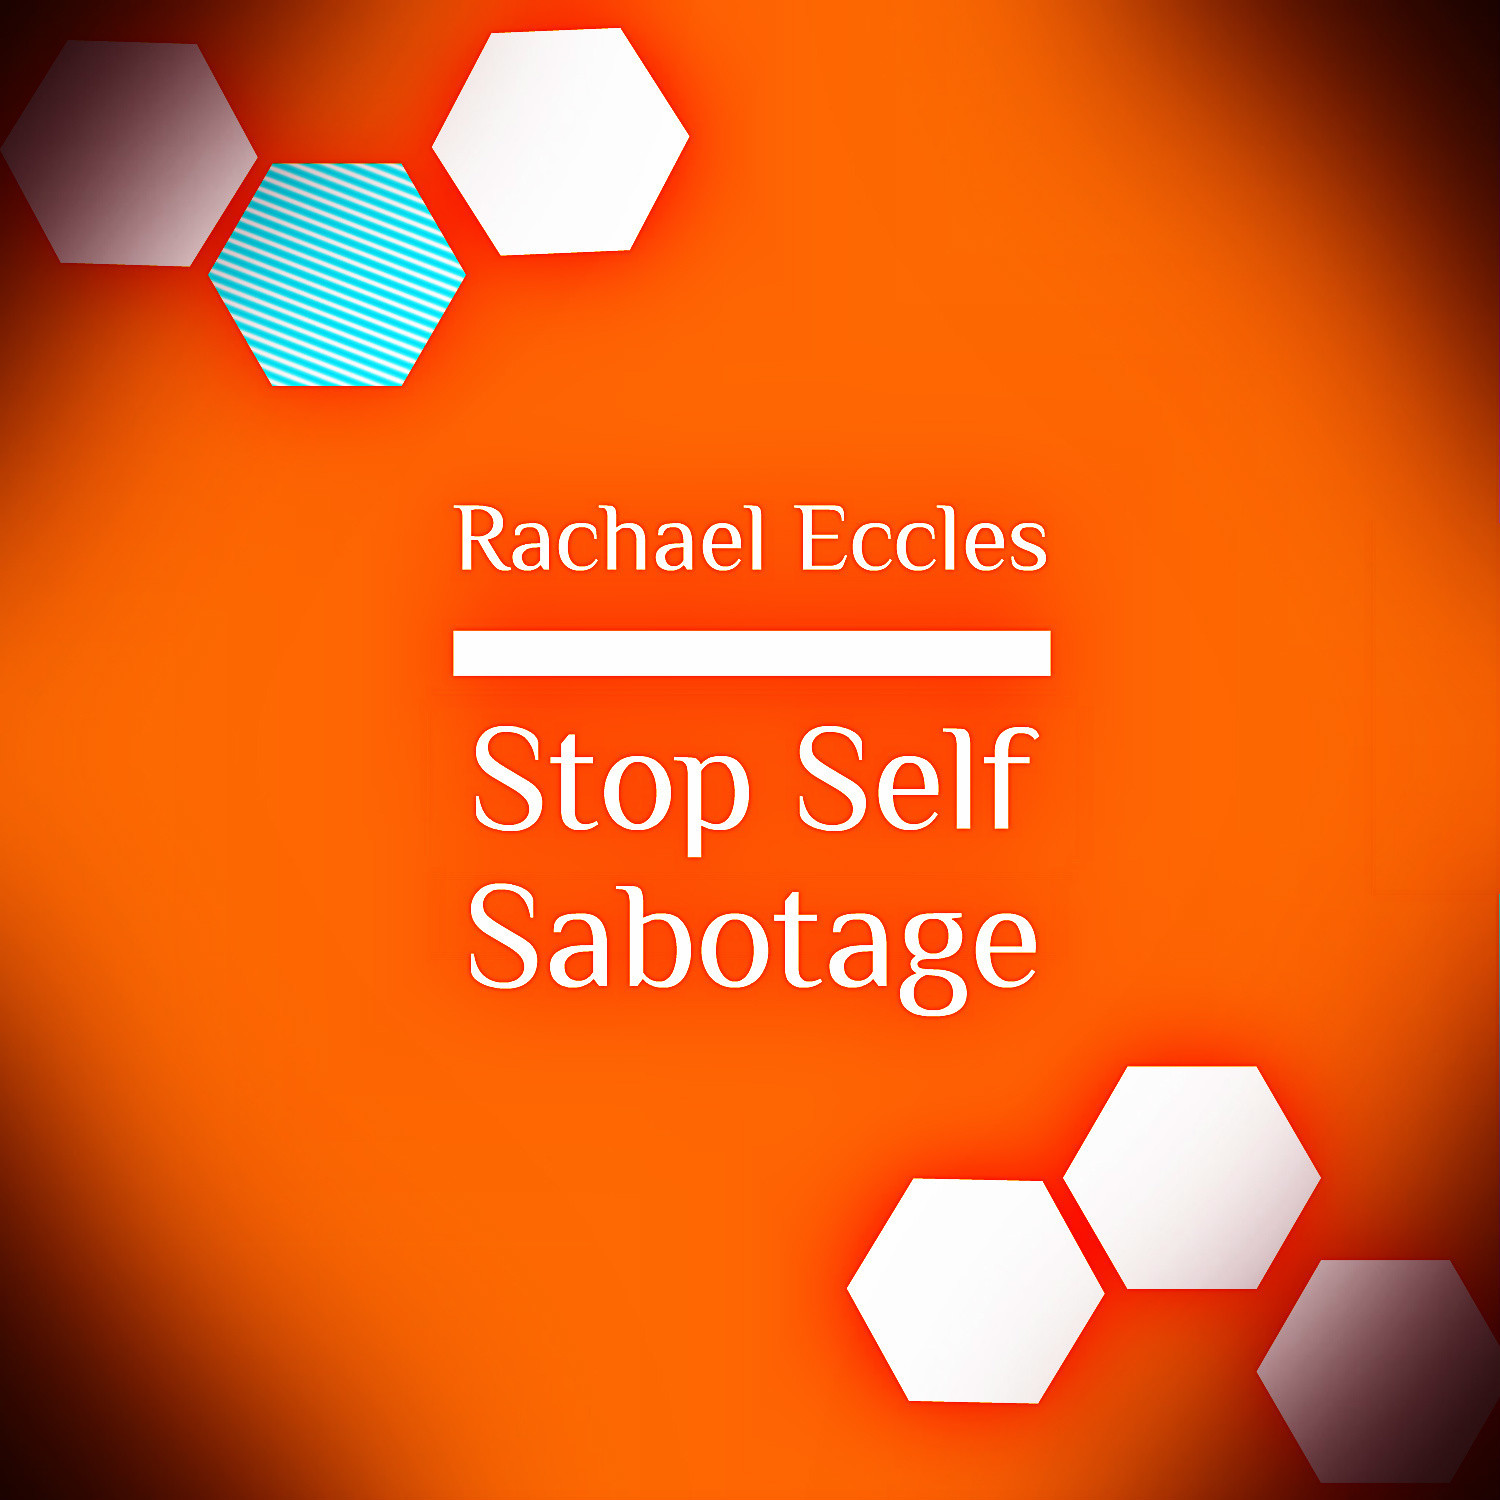 Stop Self Sabotage Hypnosis to Love Yourself and Break the Cycle, Guided Hypnotherapy Hypnosis Download or CD